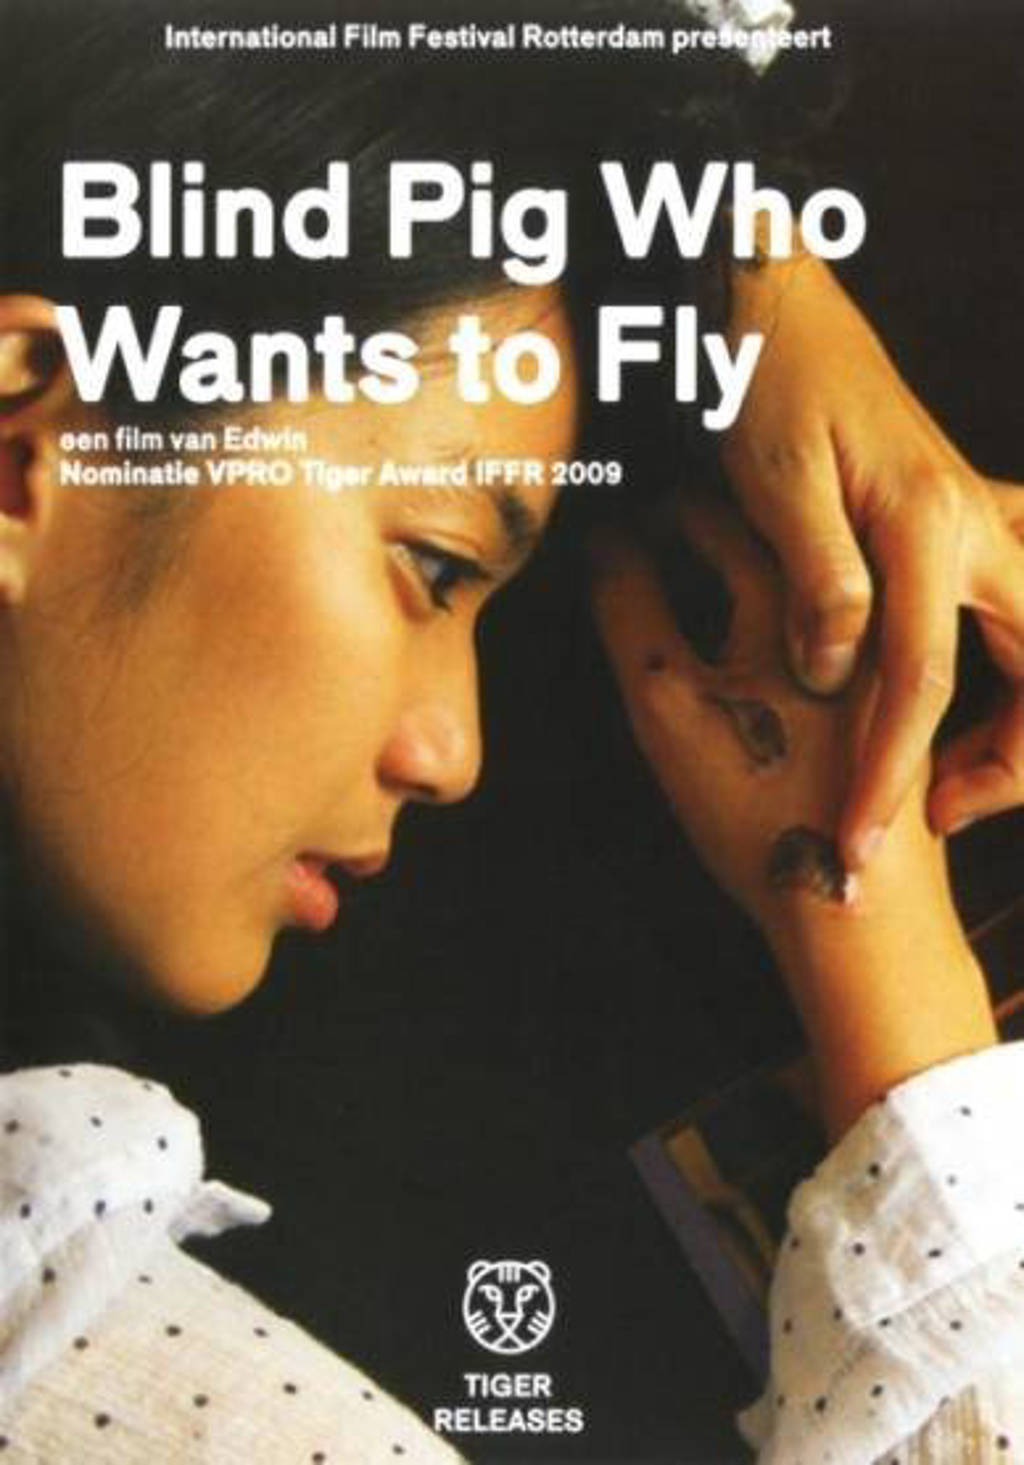 Blind pig who wants to fly (DVD)